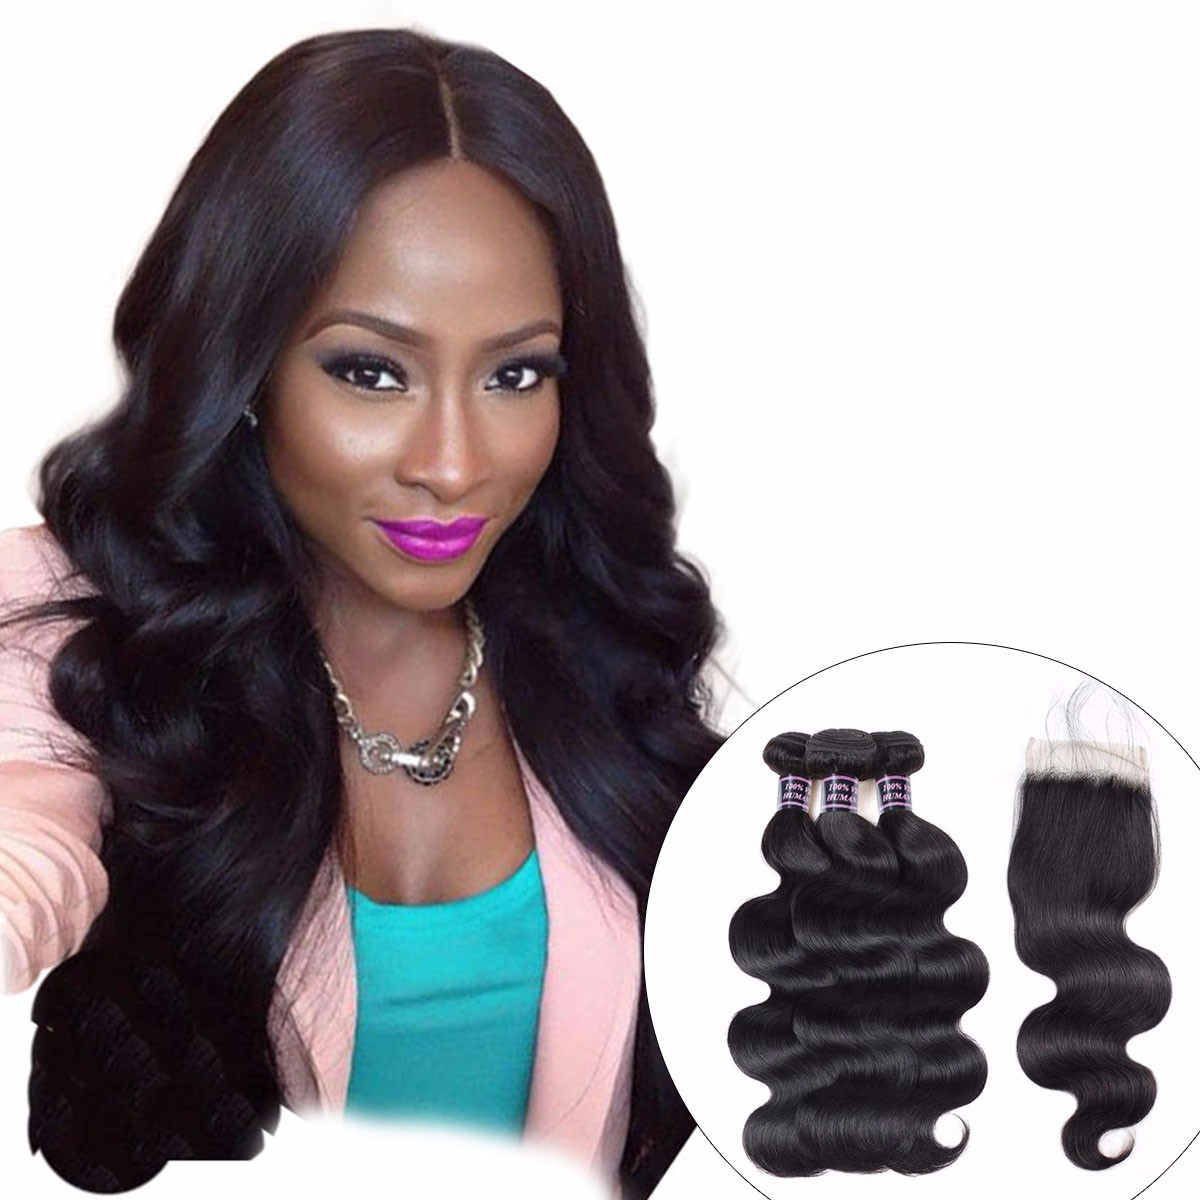 Peruvian Body Wave Lace Closure With Baby Hair, Non Remy 3 Bundles Hair, 100% Human Hair Bundles With Closure 26 28 28 Closure20/Three Part